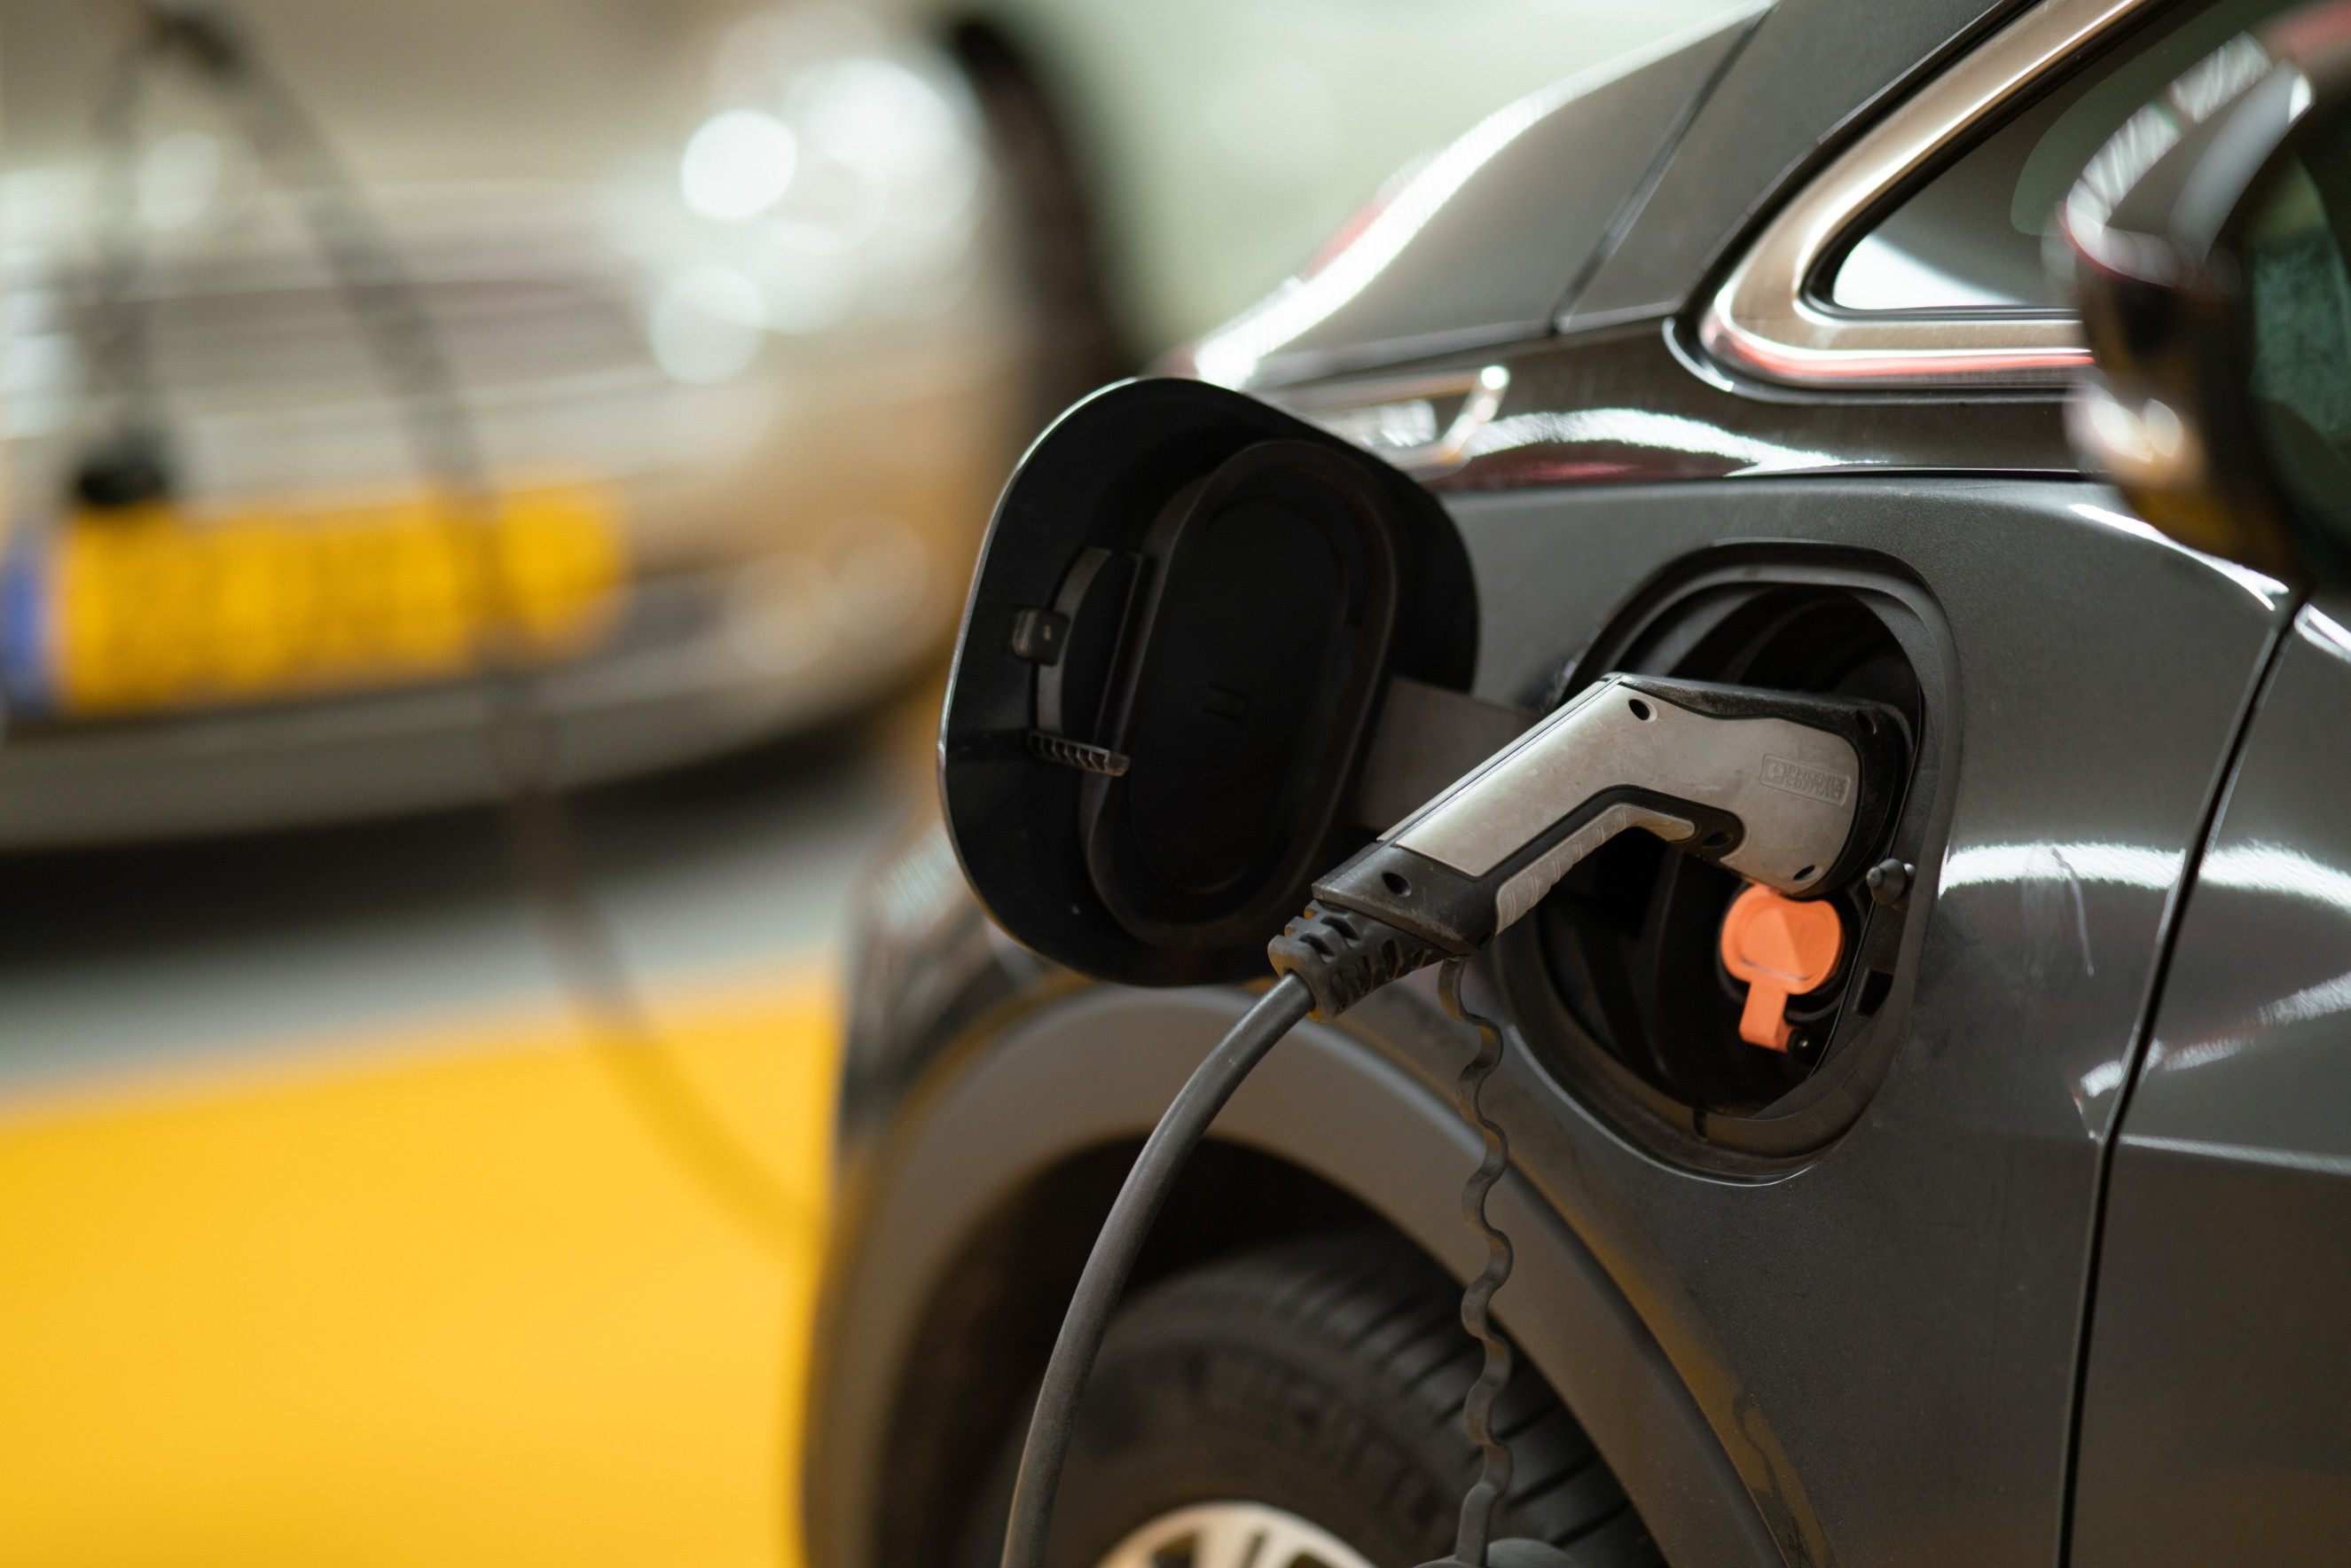 How do you improve the EV charging experience? Uptimes and Downtimes